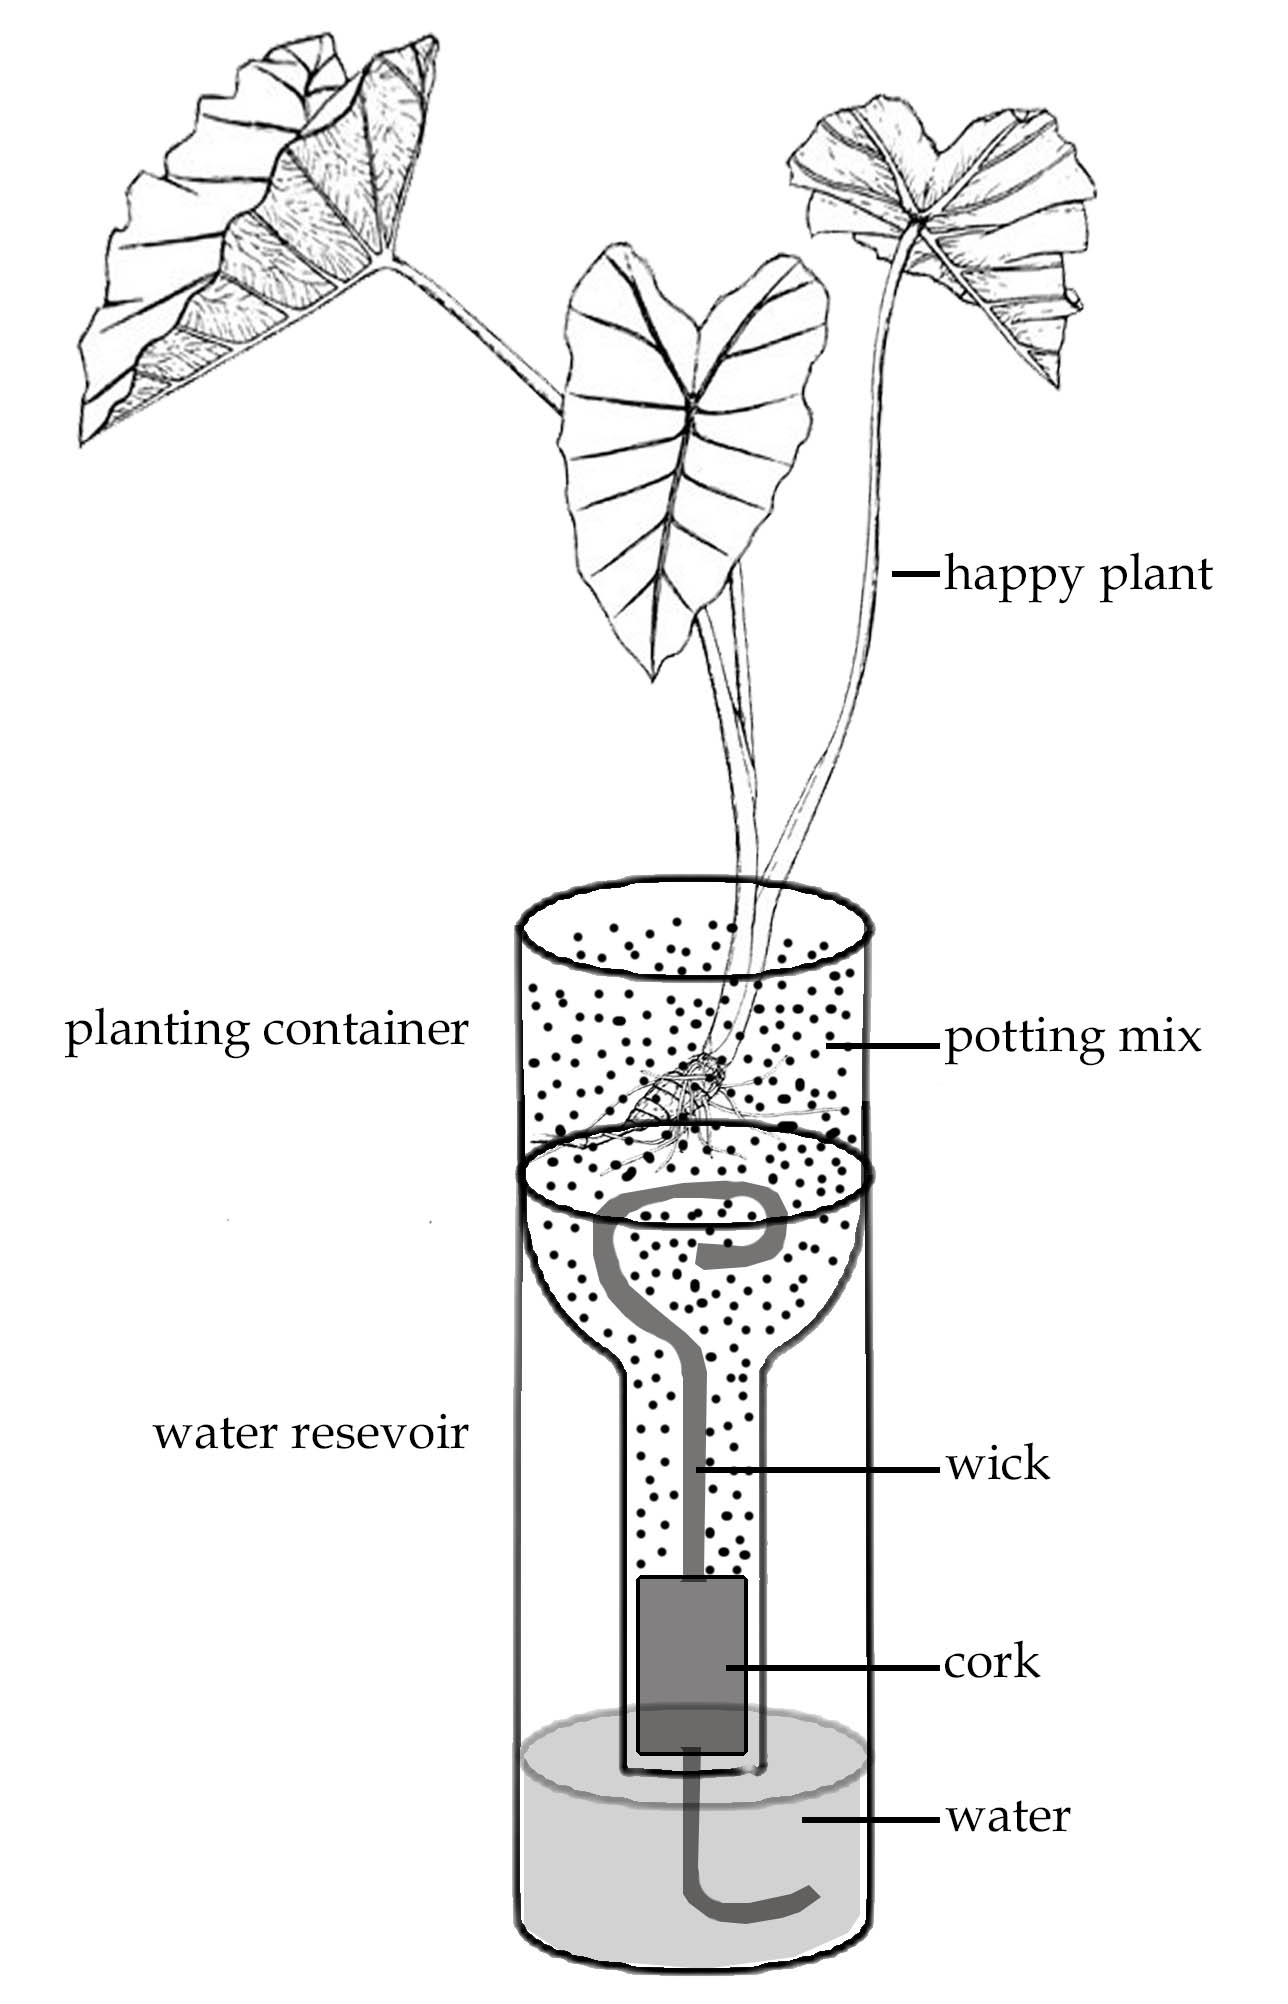 Use And Care Of Self Watering Planters